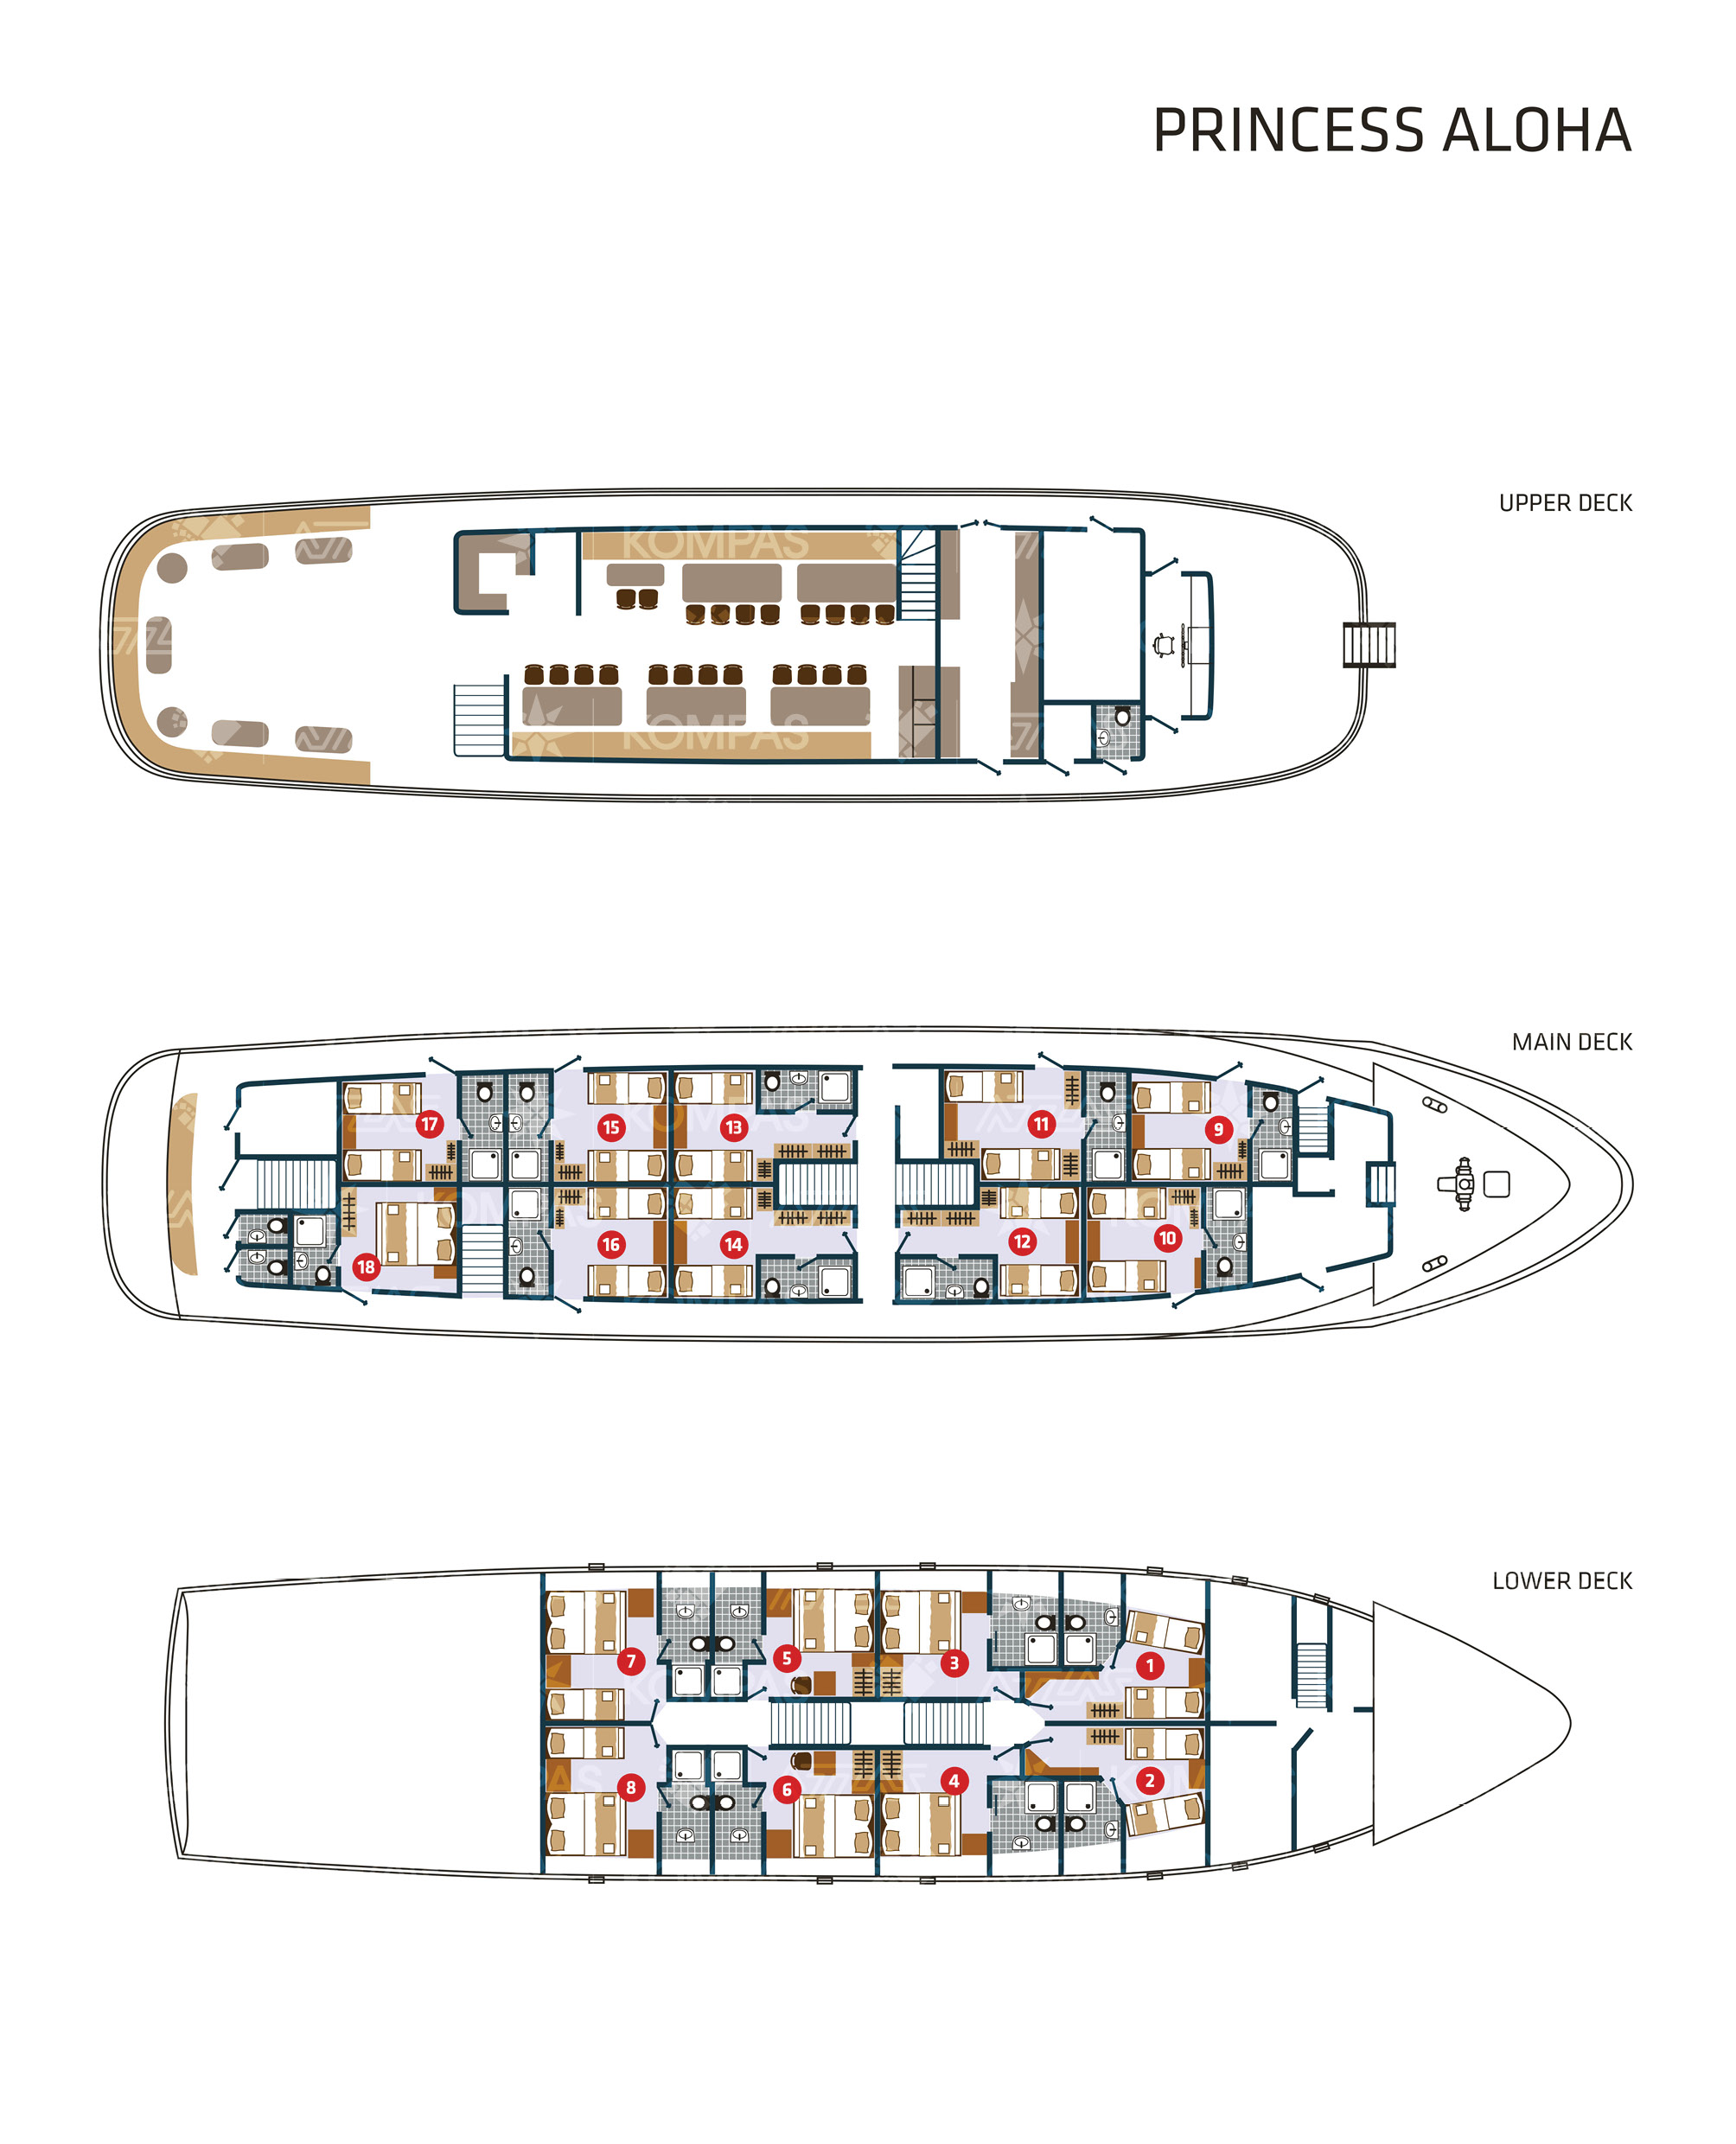 Princess Aloha Deck Plan